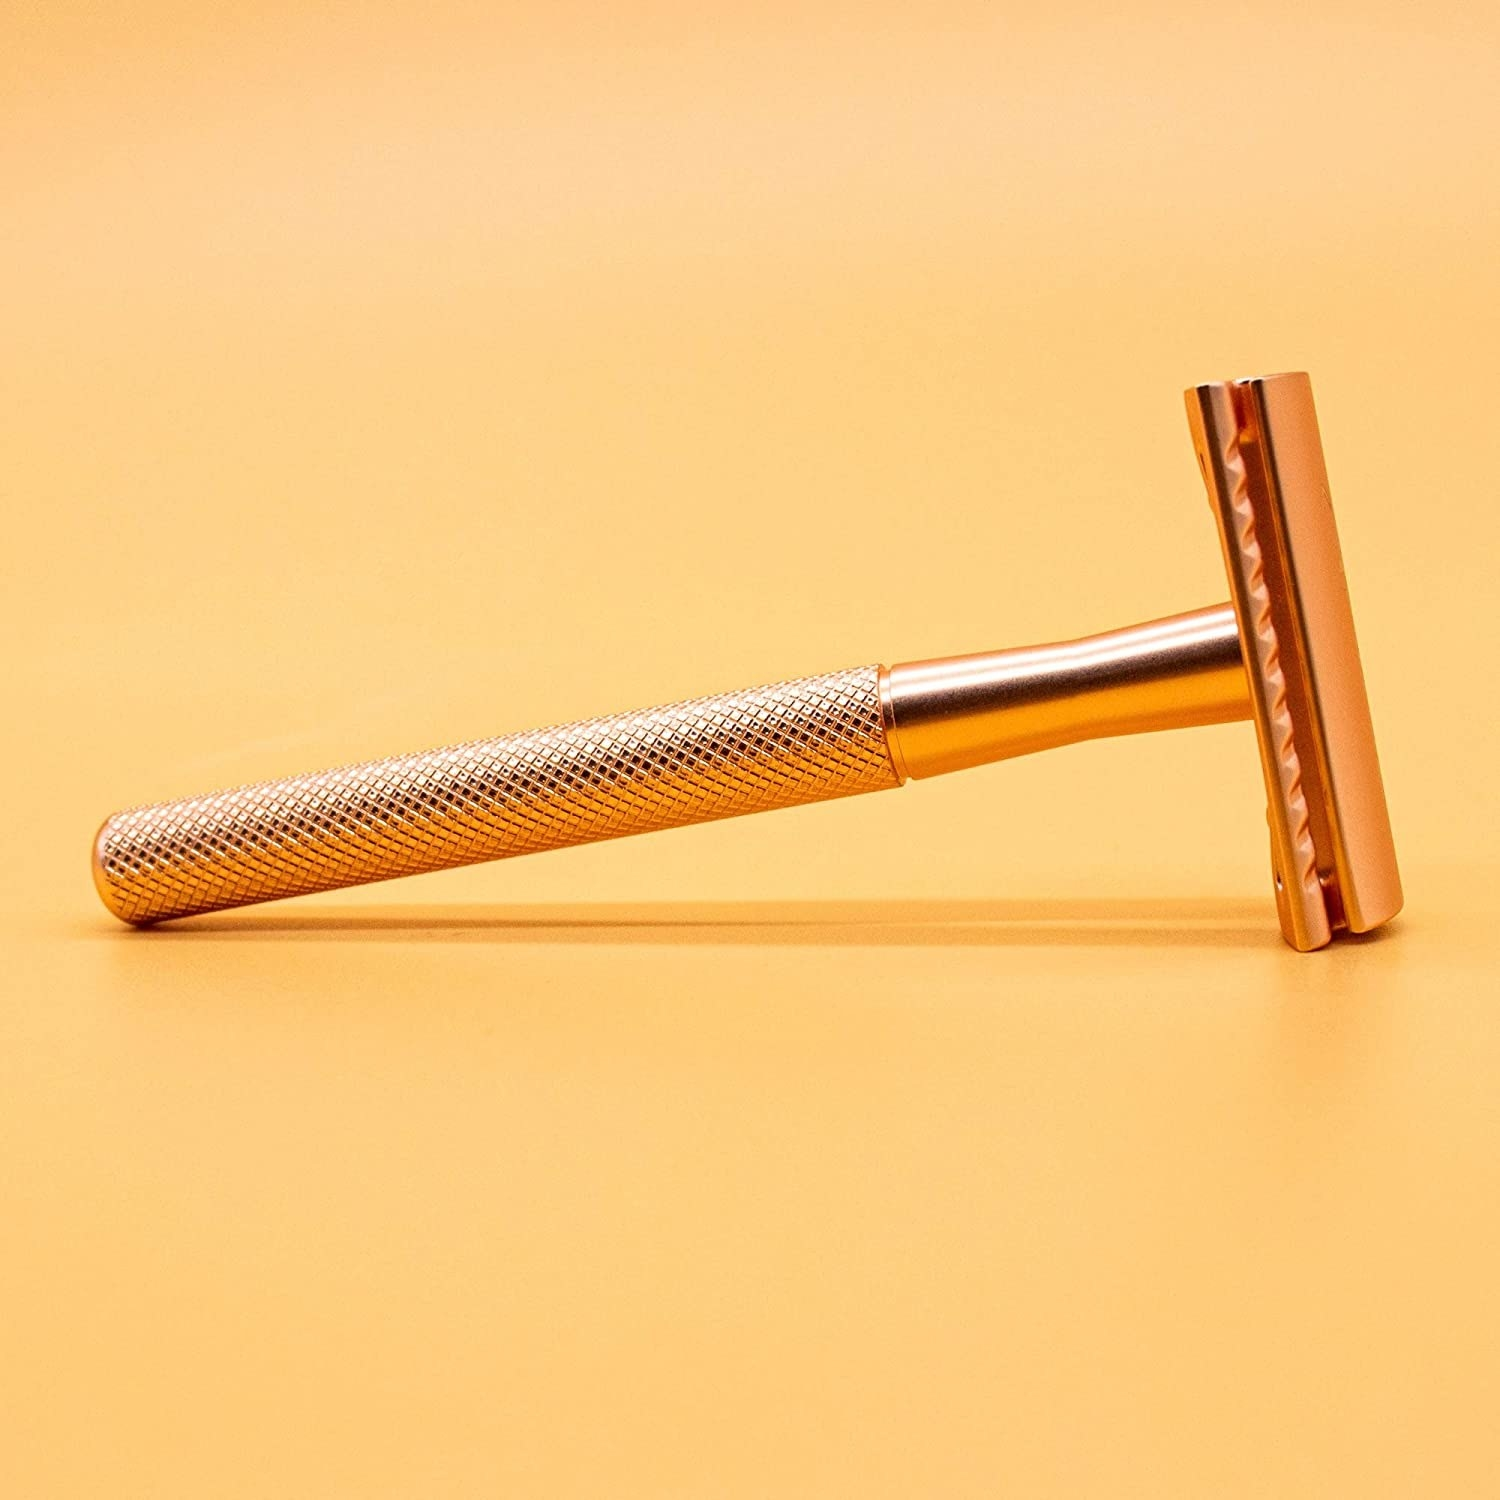 A rose gold razor on a table